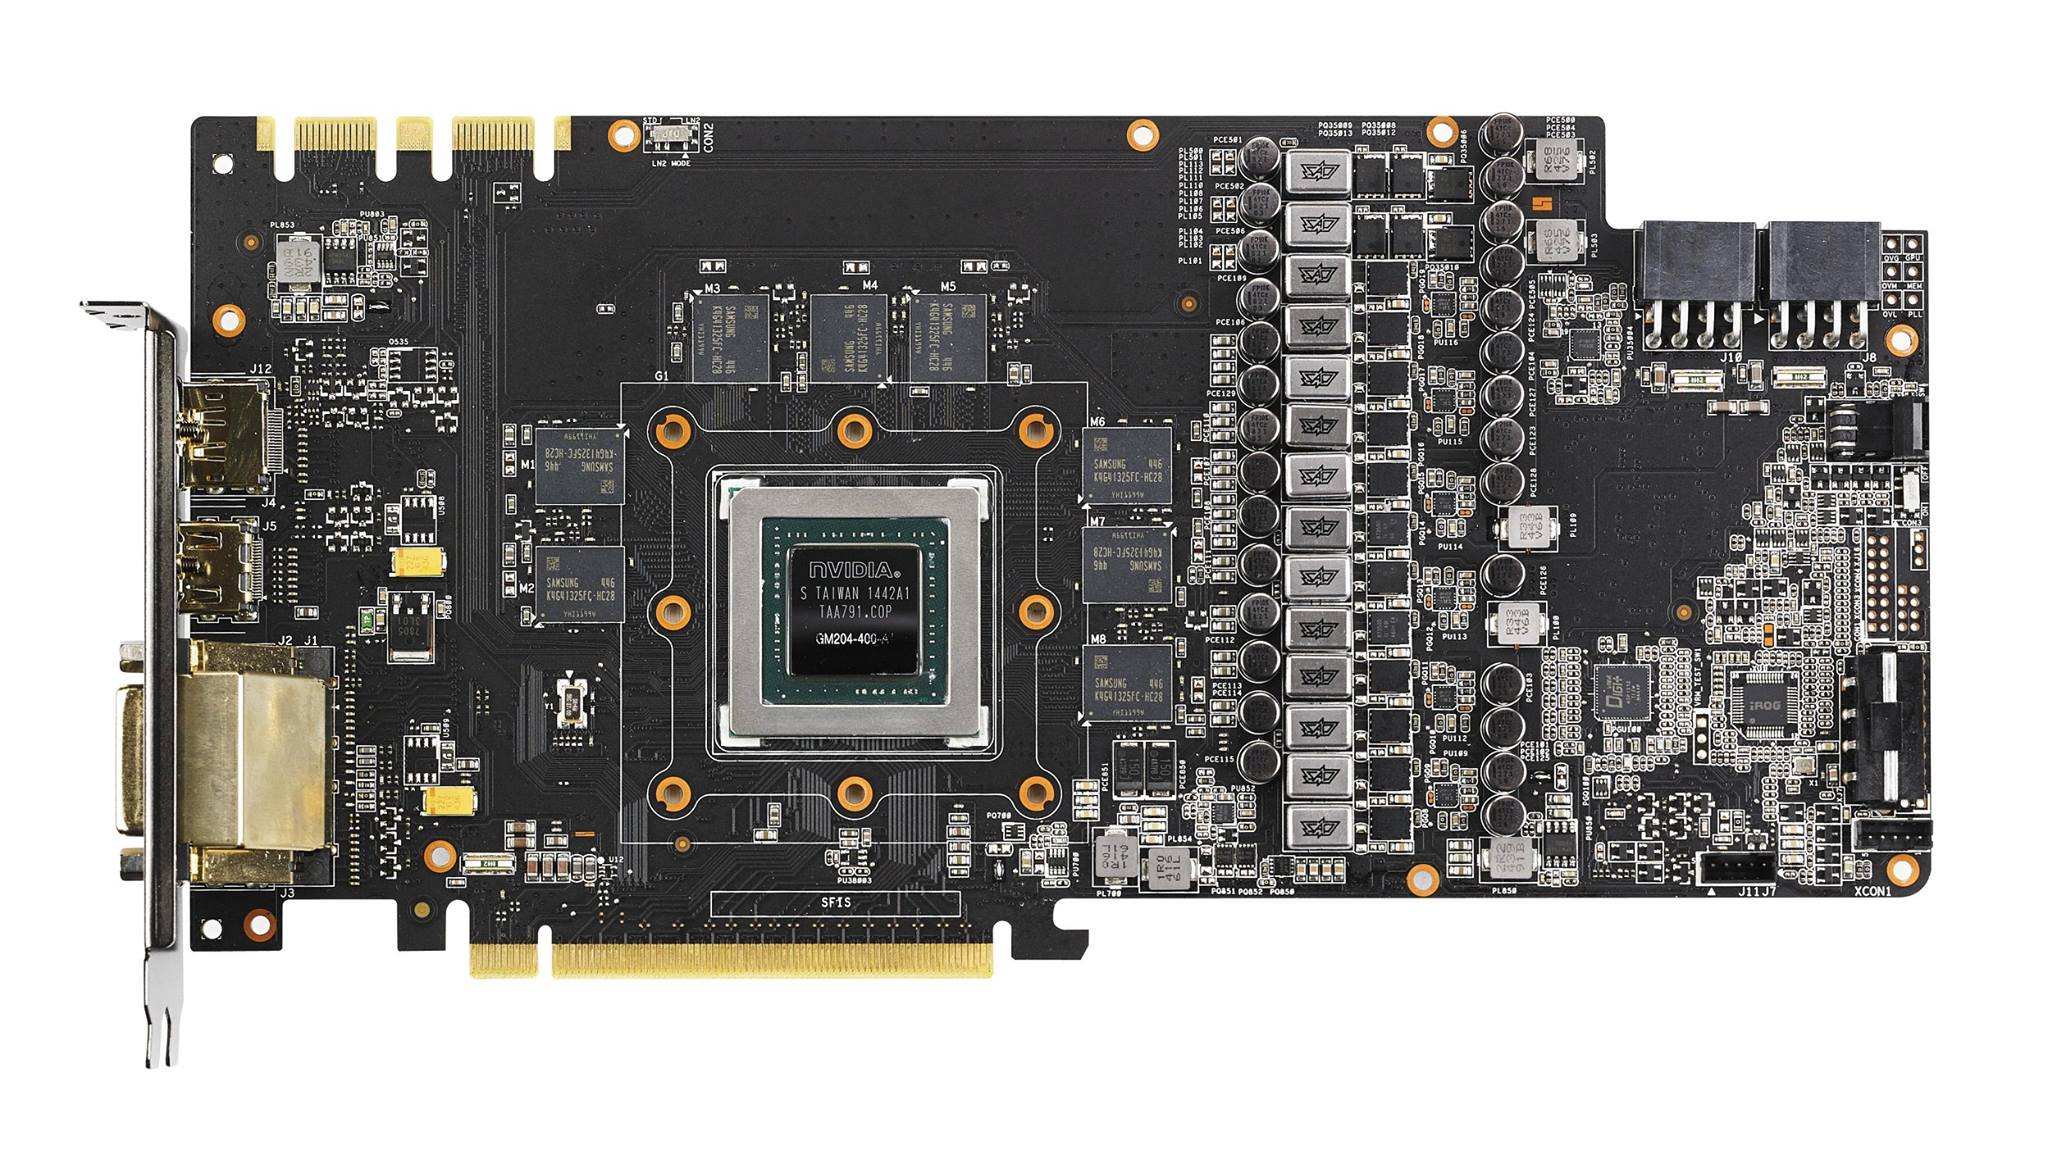 ASUS-GTX-980-GOLD-EDITION-05